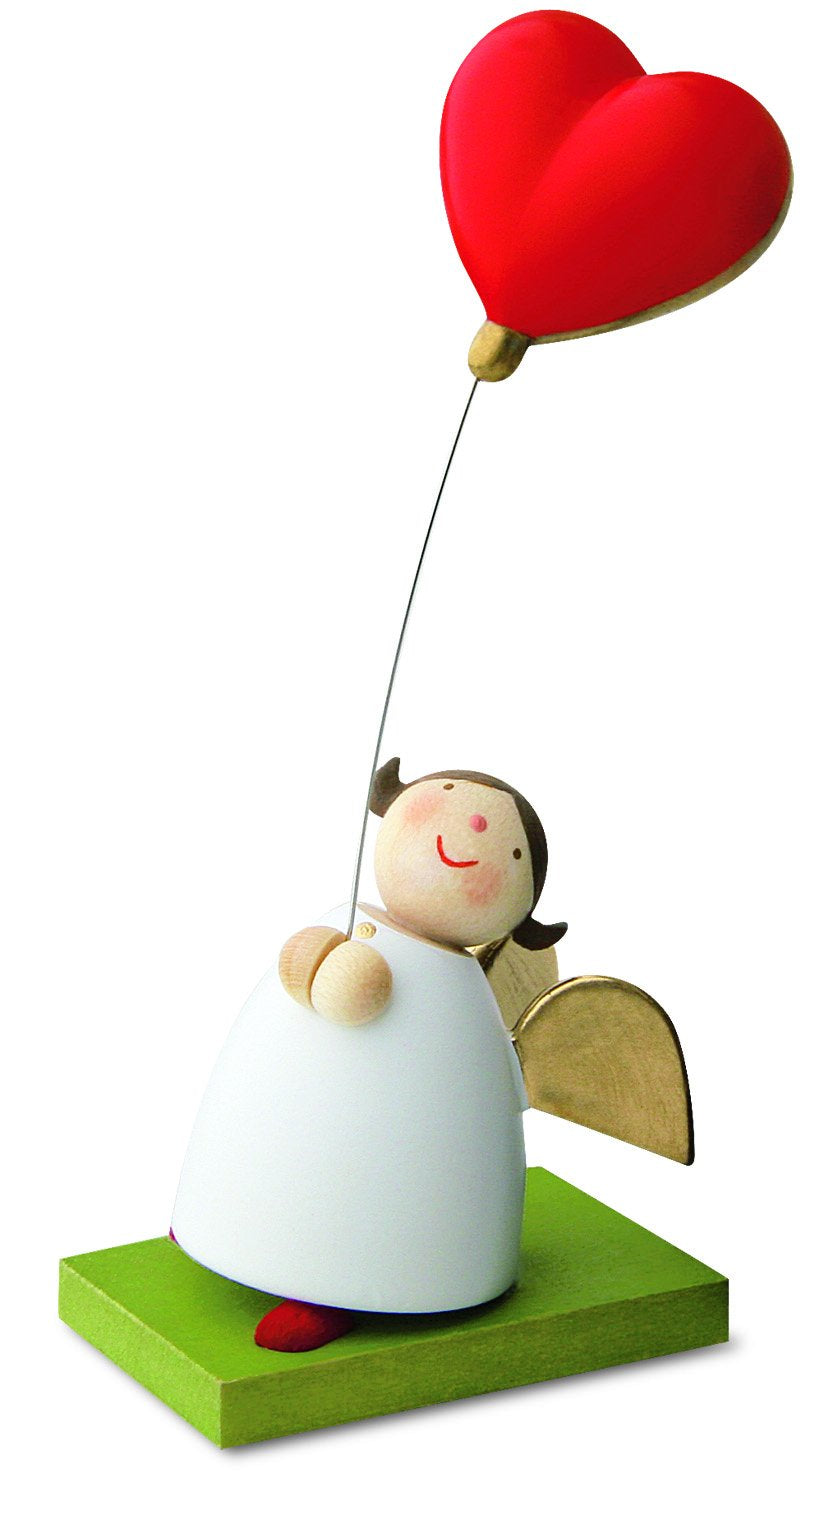 Little Angel Figurine - Guardian Angel with Balloon Heart